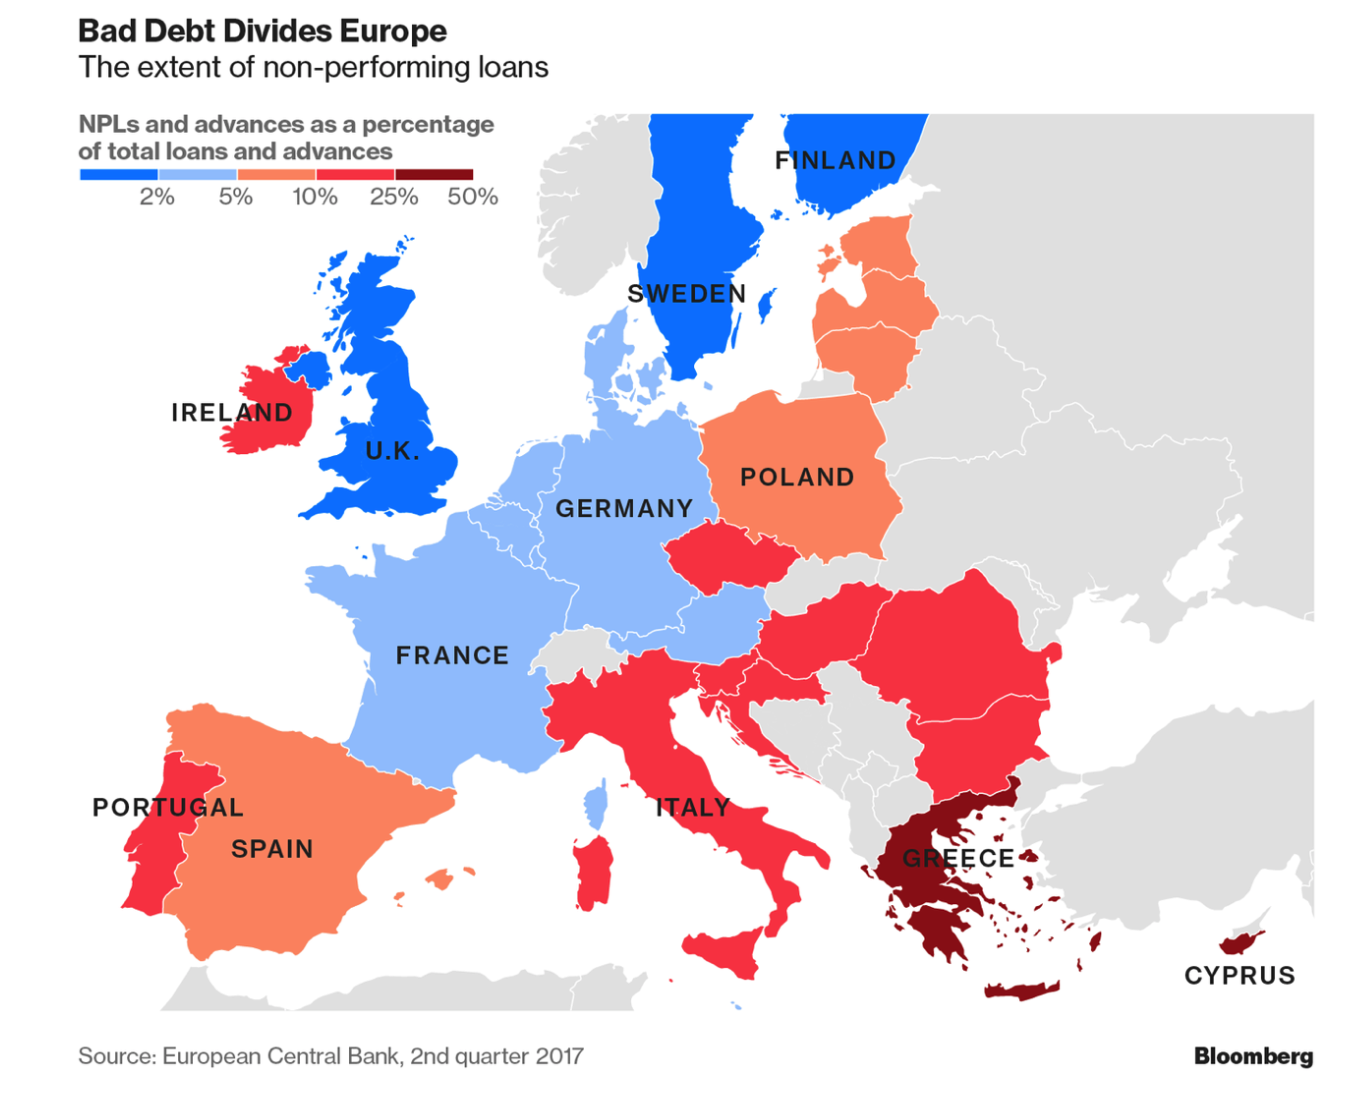 Bank Bail-In Risk In European Countries Seen In 5 Key Charts Bank Bail-In Risk In European Countries Seen In 5 Key Charts Snip20180220 4